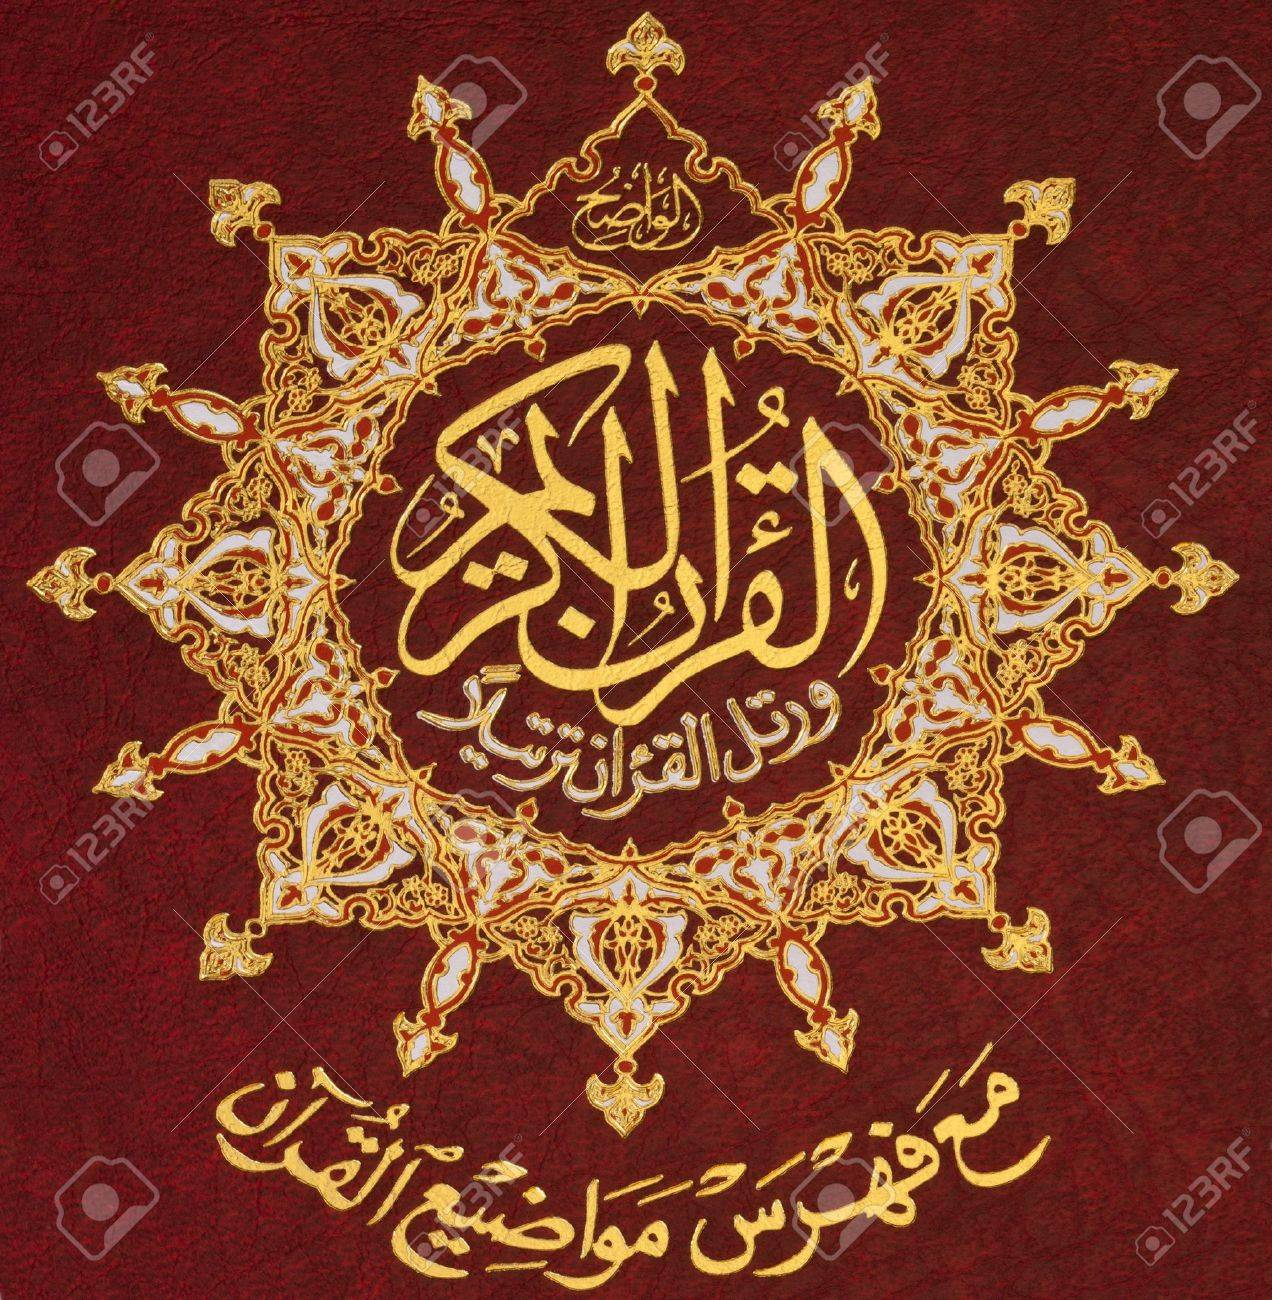 The Koran (Quran) is the Islamic sacred book, believed to be the word of God as dictated to Muhammad by the archangel Gabriel and written down in Arabic. The Koran consists of 114 units of varying lengths, known as suras; the first sura is said as part of - 20372491